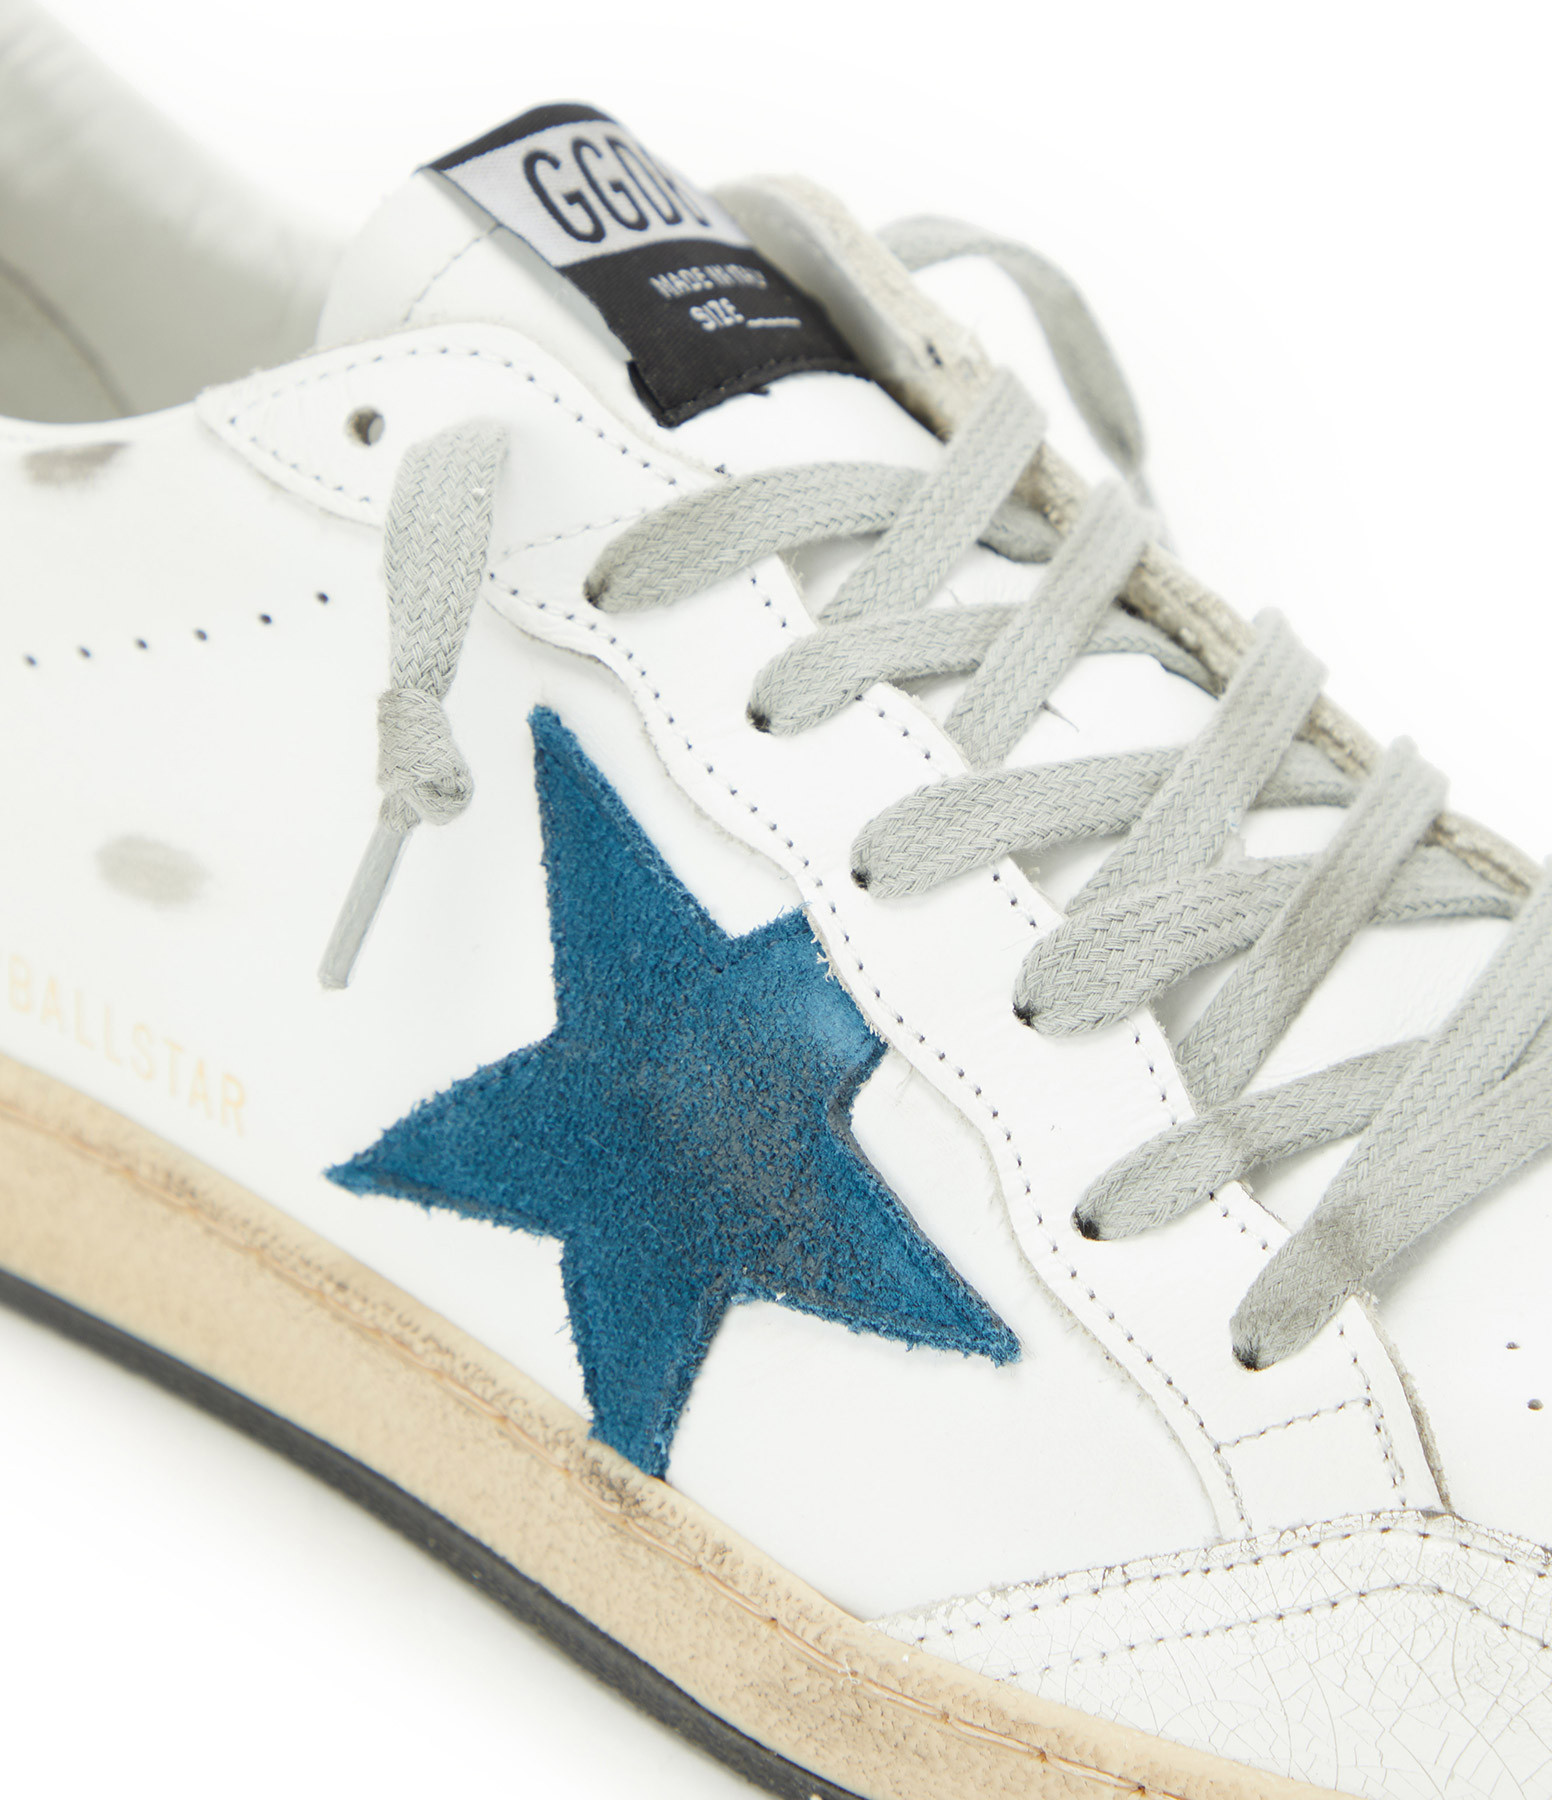 GOLDEN GOOSE - Baskets Homme Ball Star Cuir Suédé Bleu Blanc